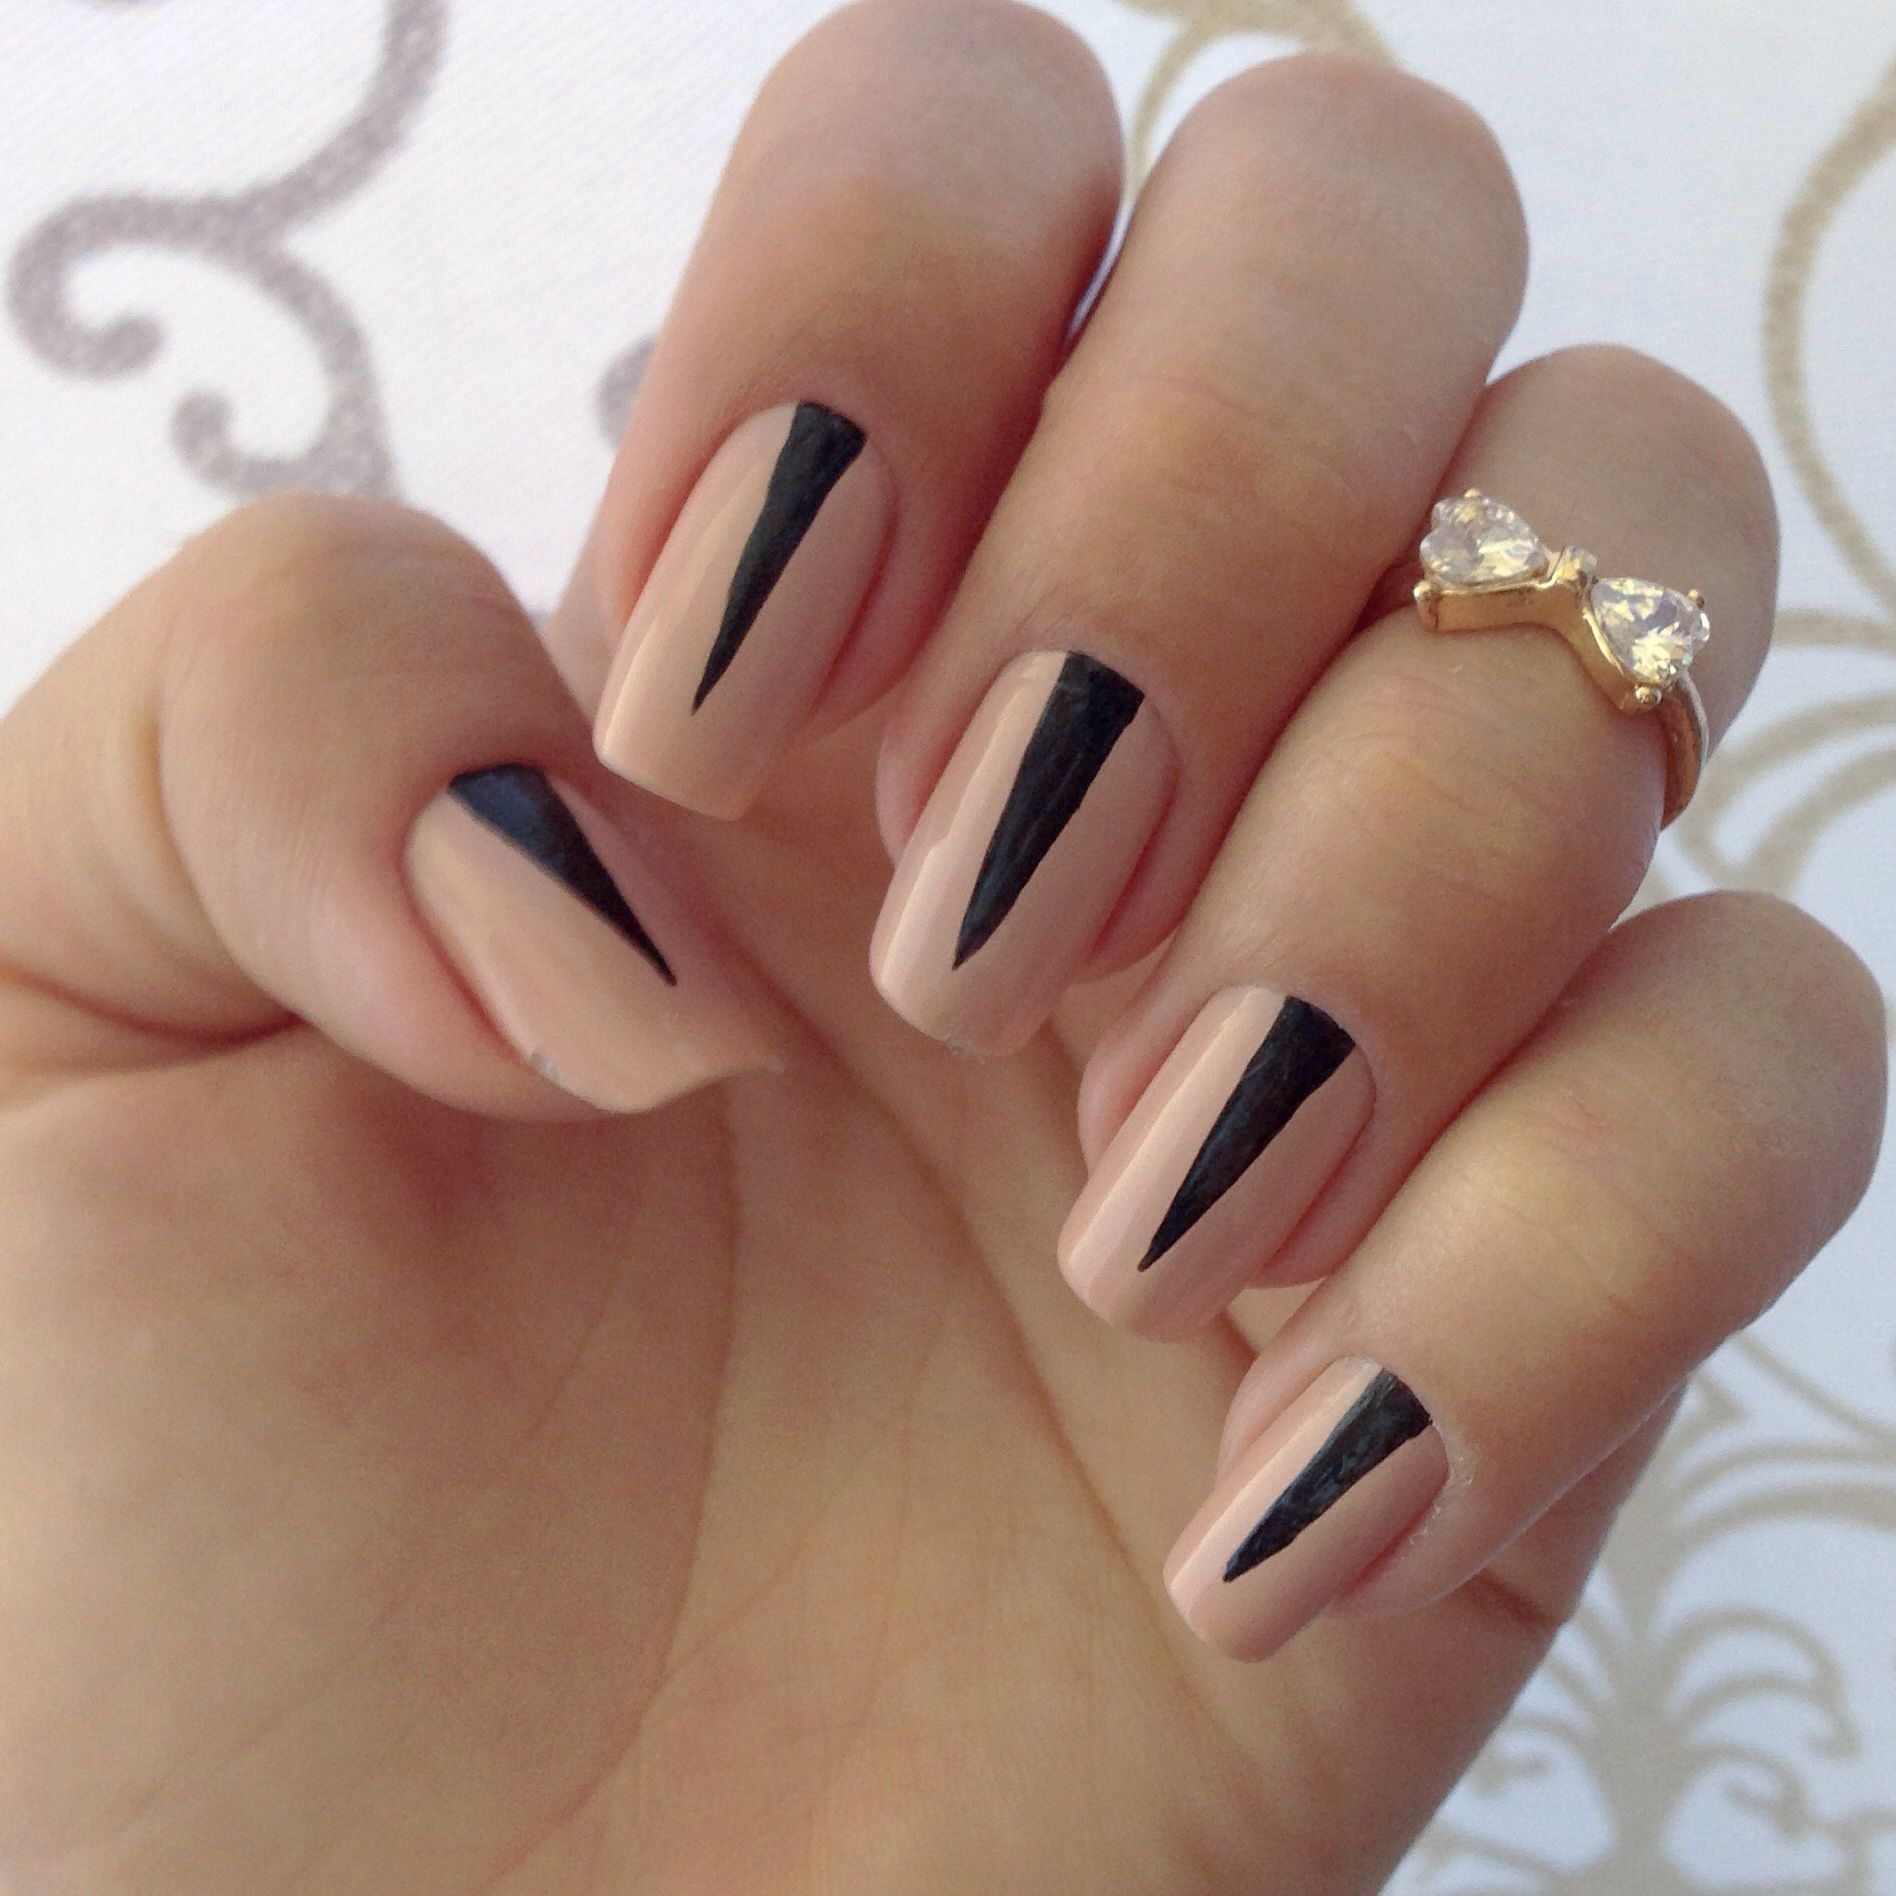 Black and Nude Nail design. #opi #essiestyle #manicure | Nail Art ...